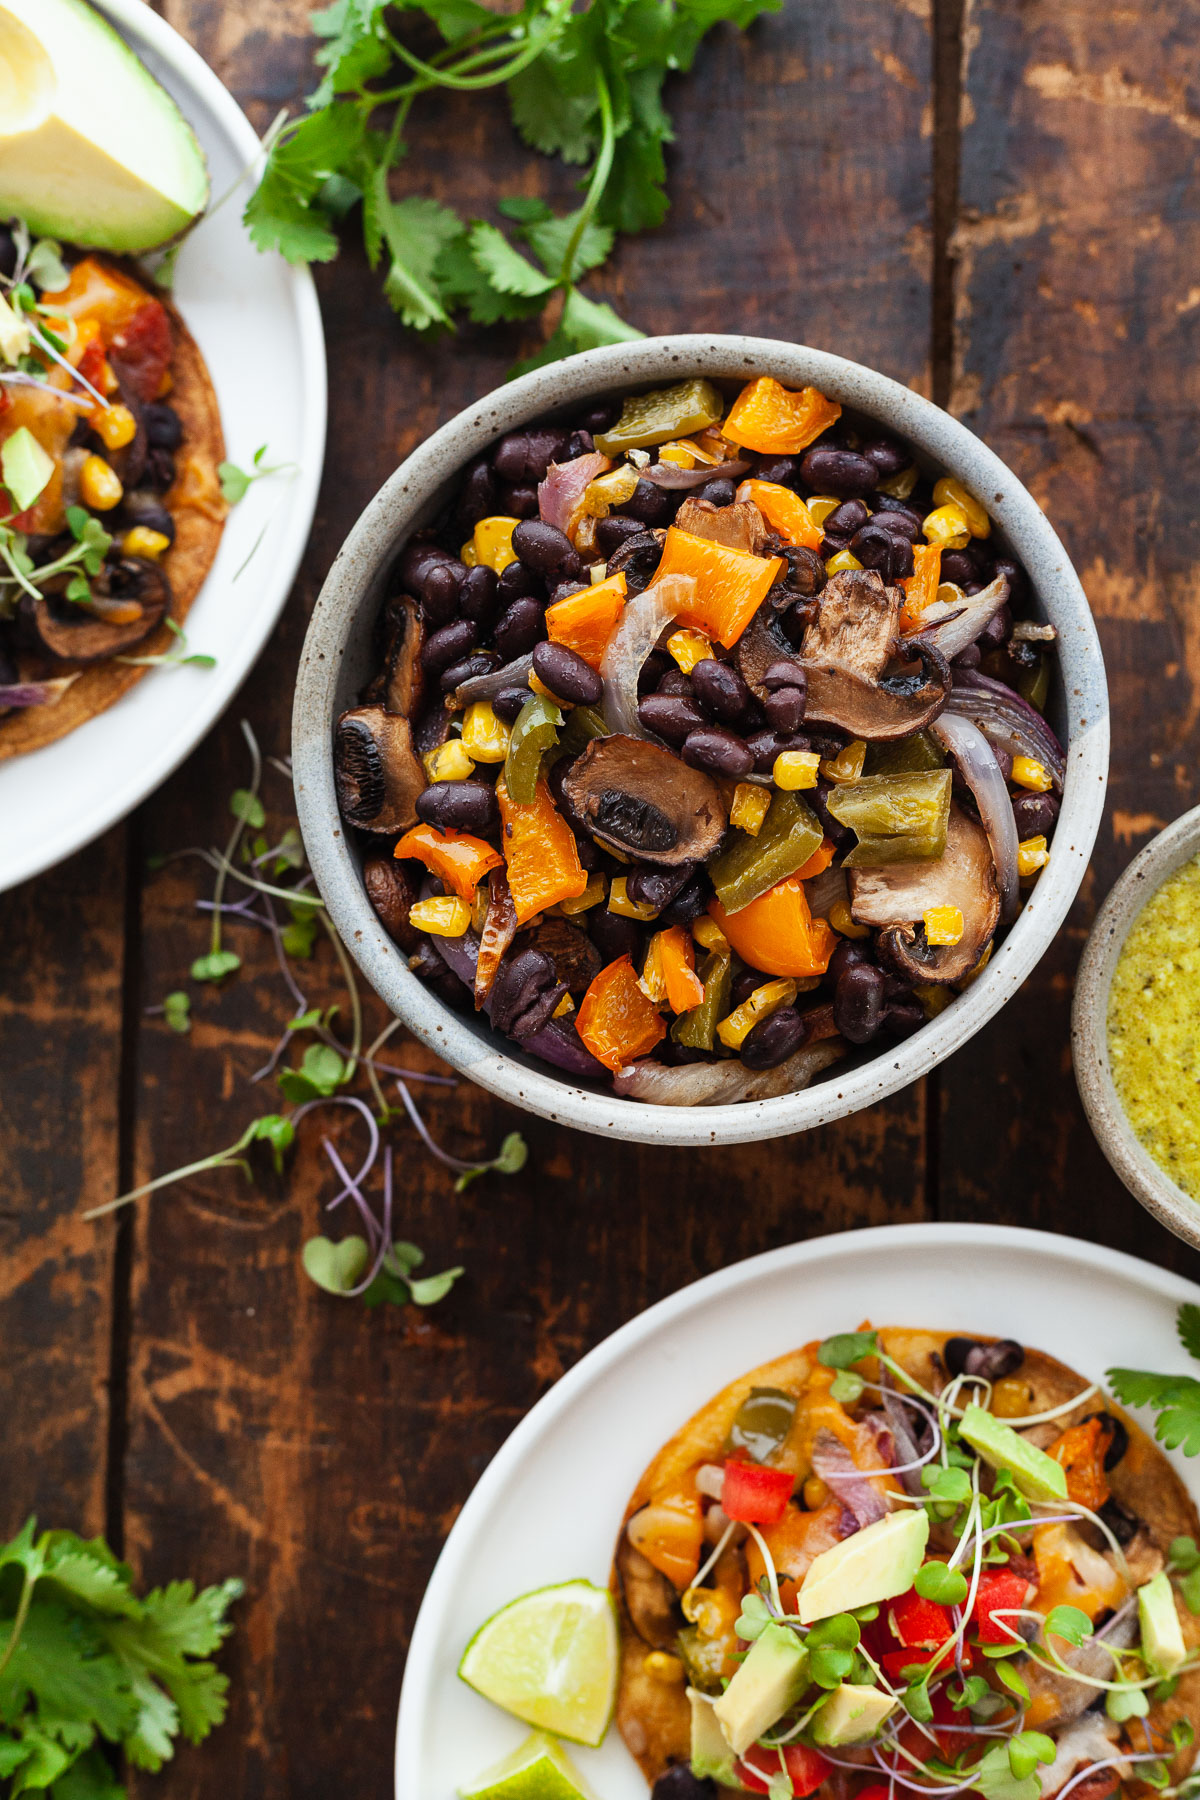 top view image of cooked veggies in bowl with roasted veggie tostadas on white plates in the corner on wooden table